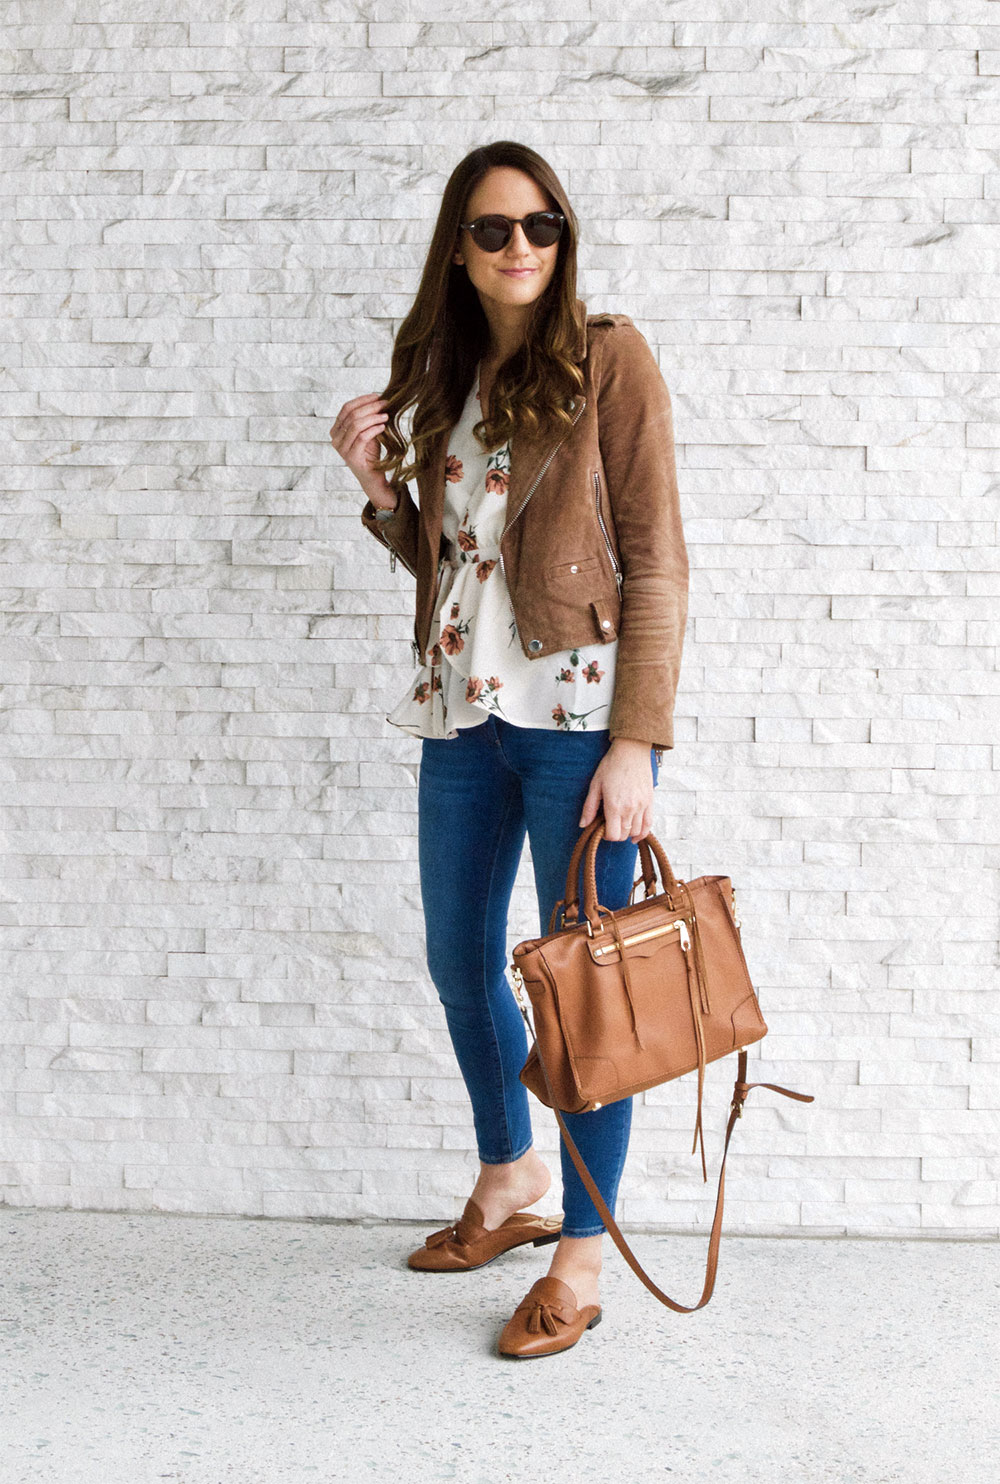 brown jacket outfit